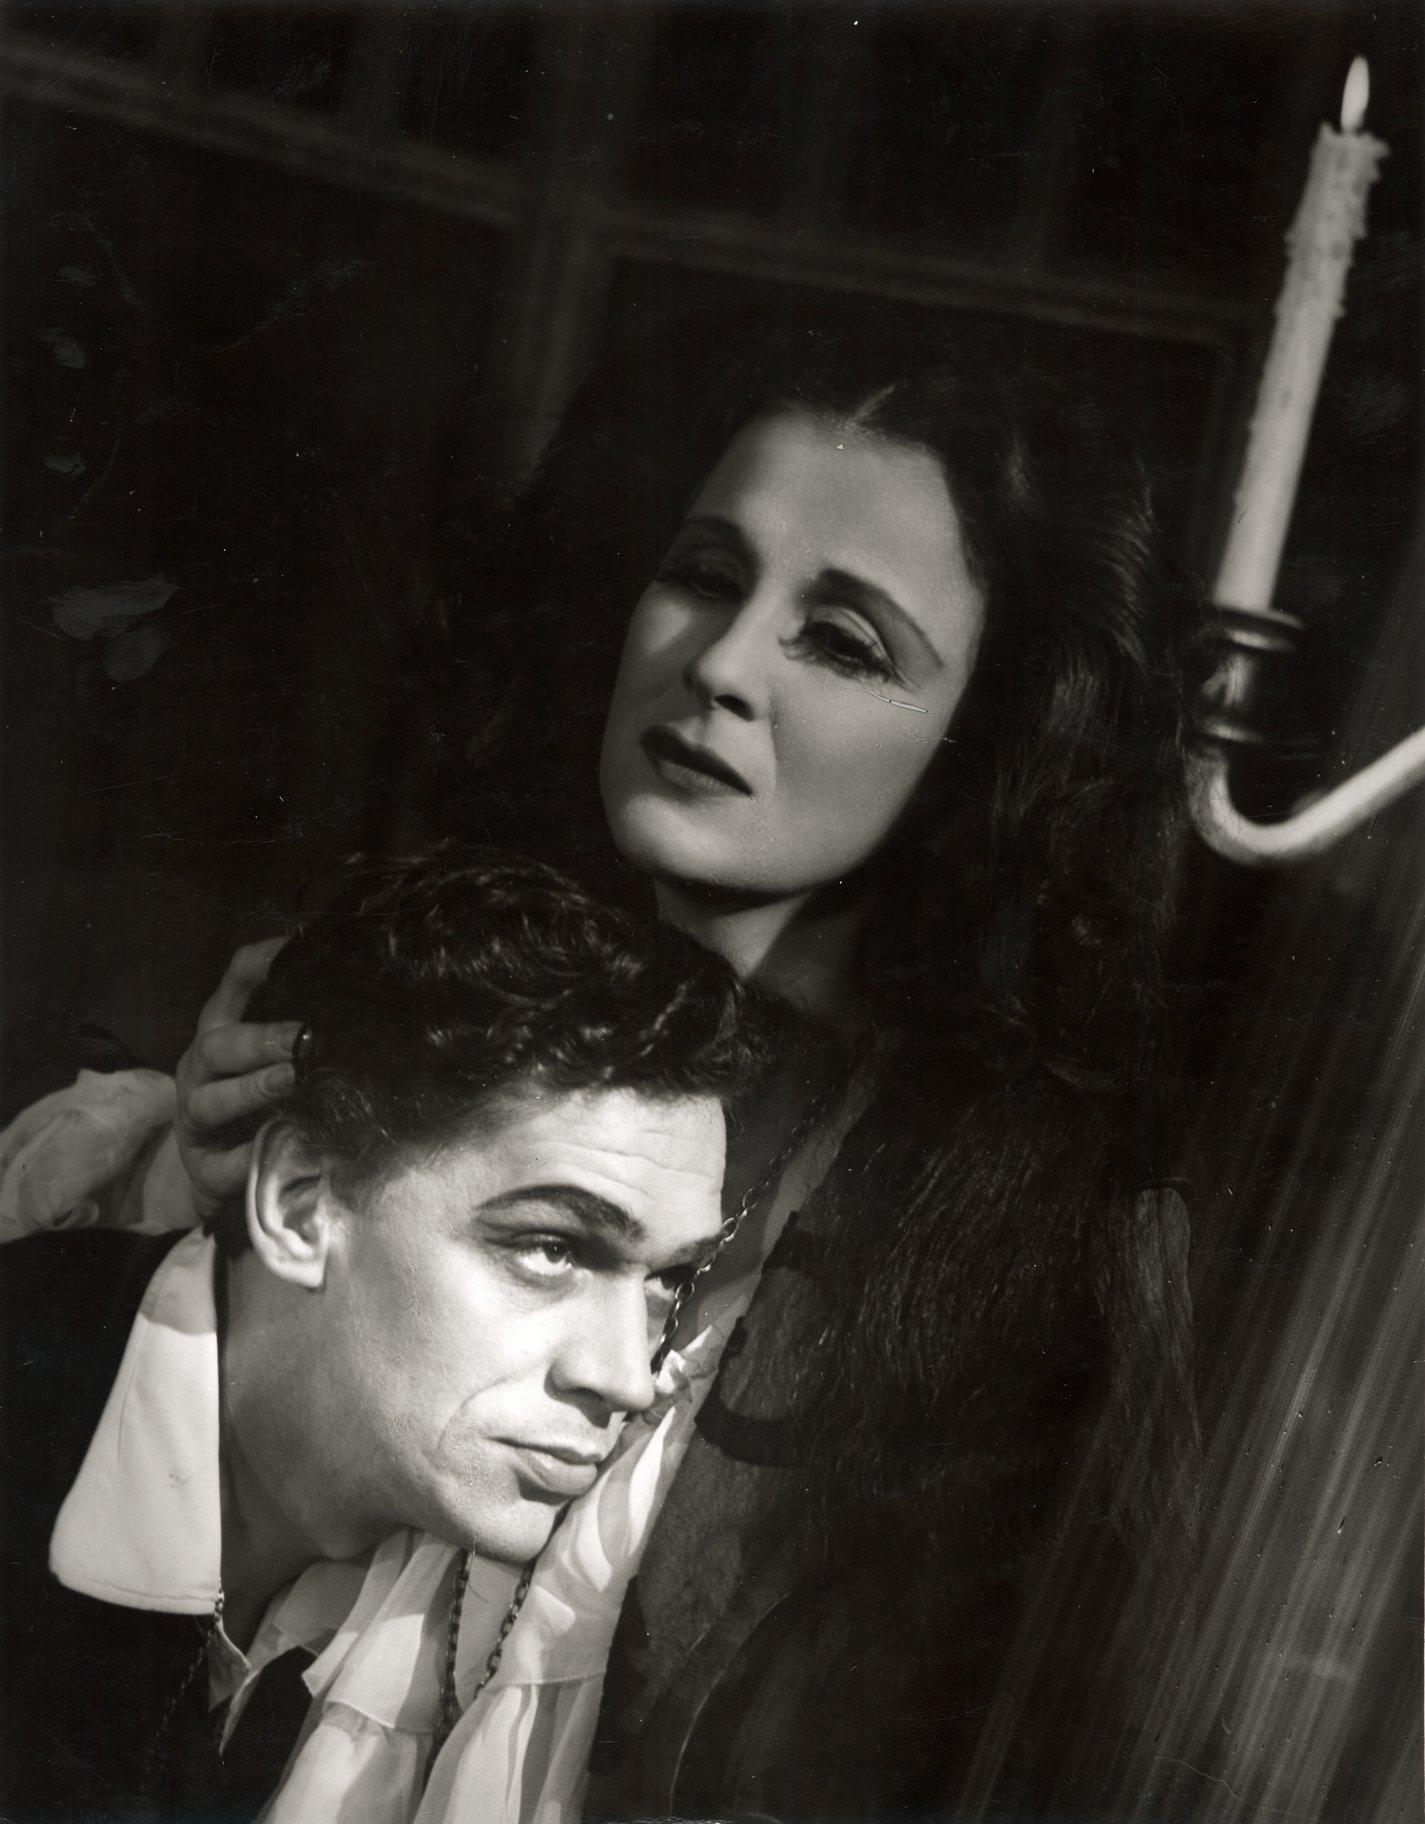 Hamlet and Gertrude in the 1948 production of Hamlet.